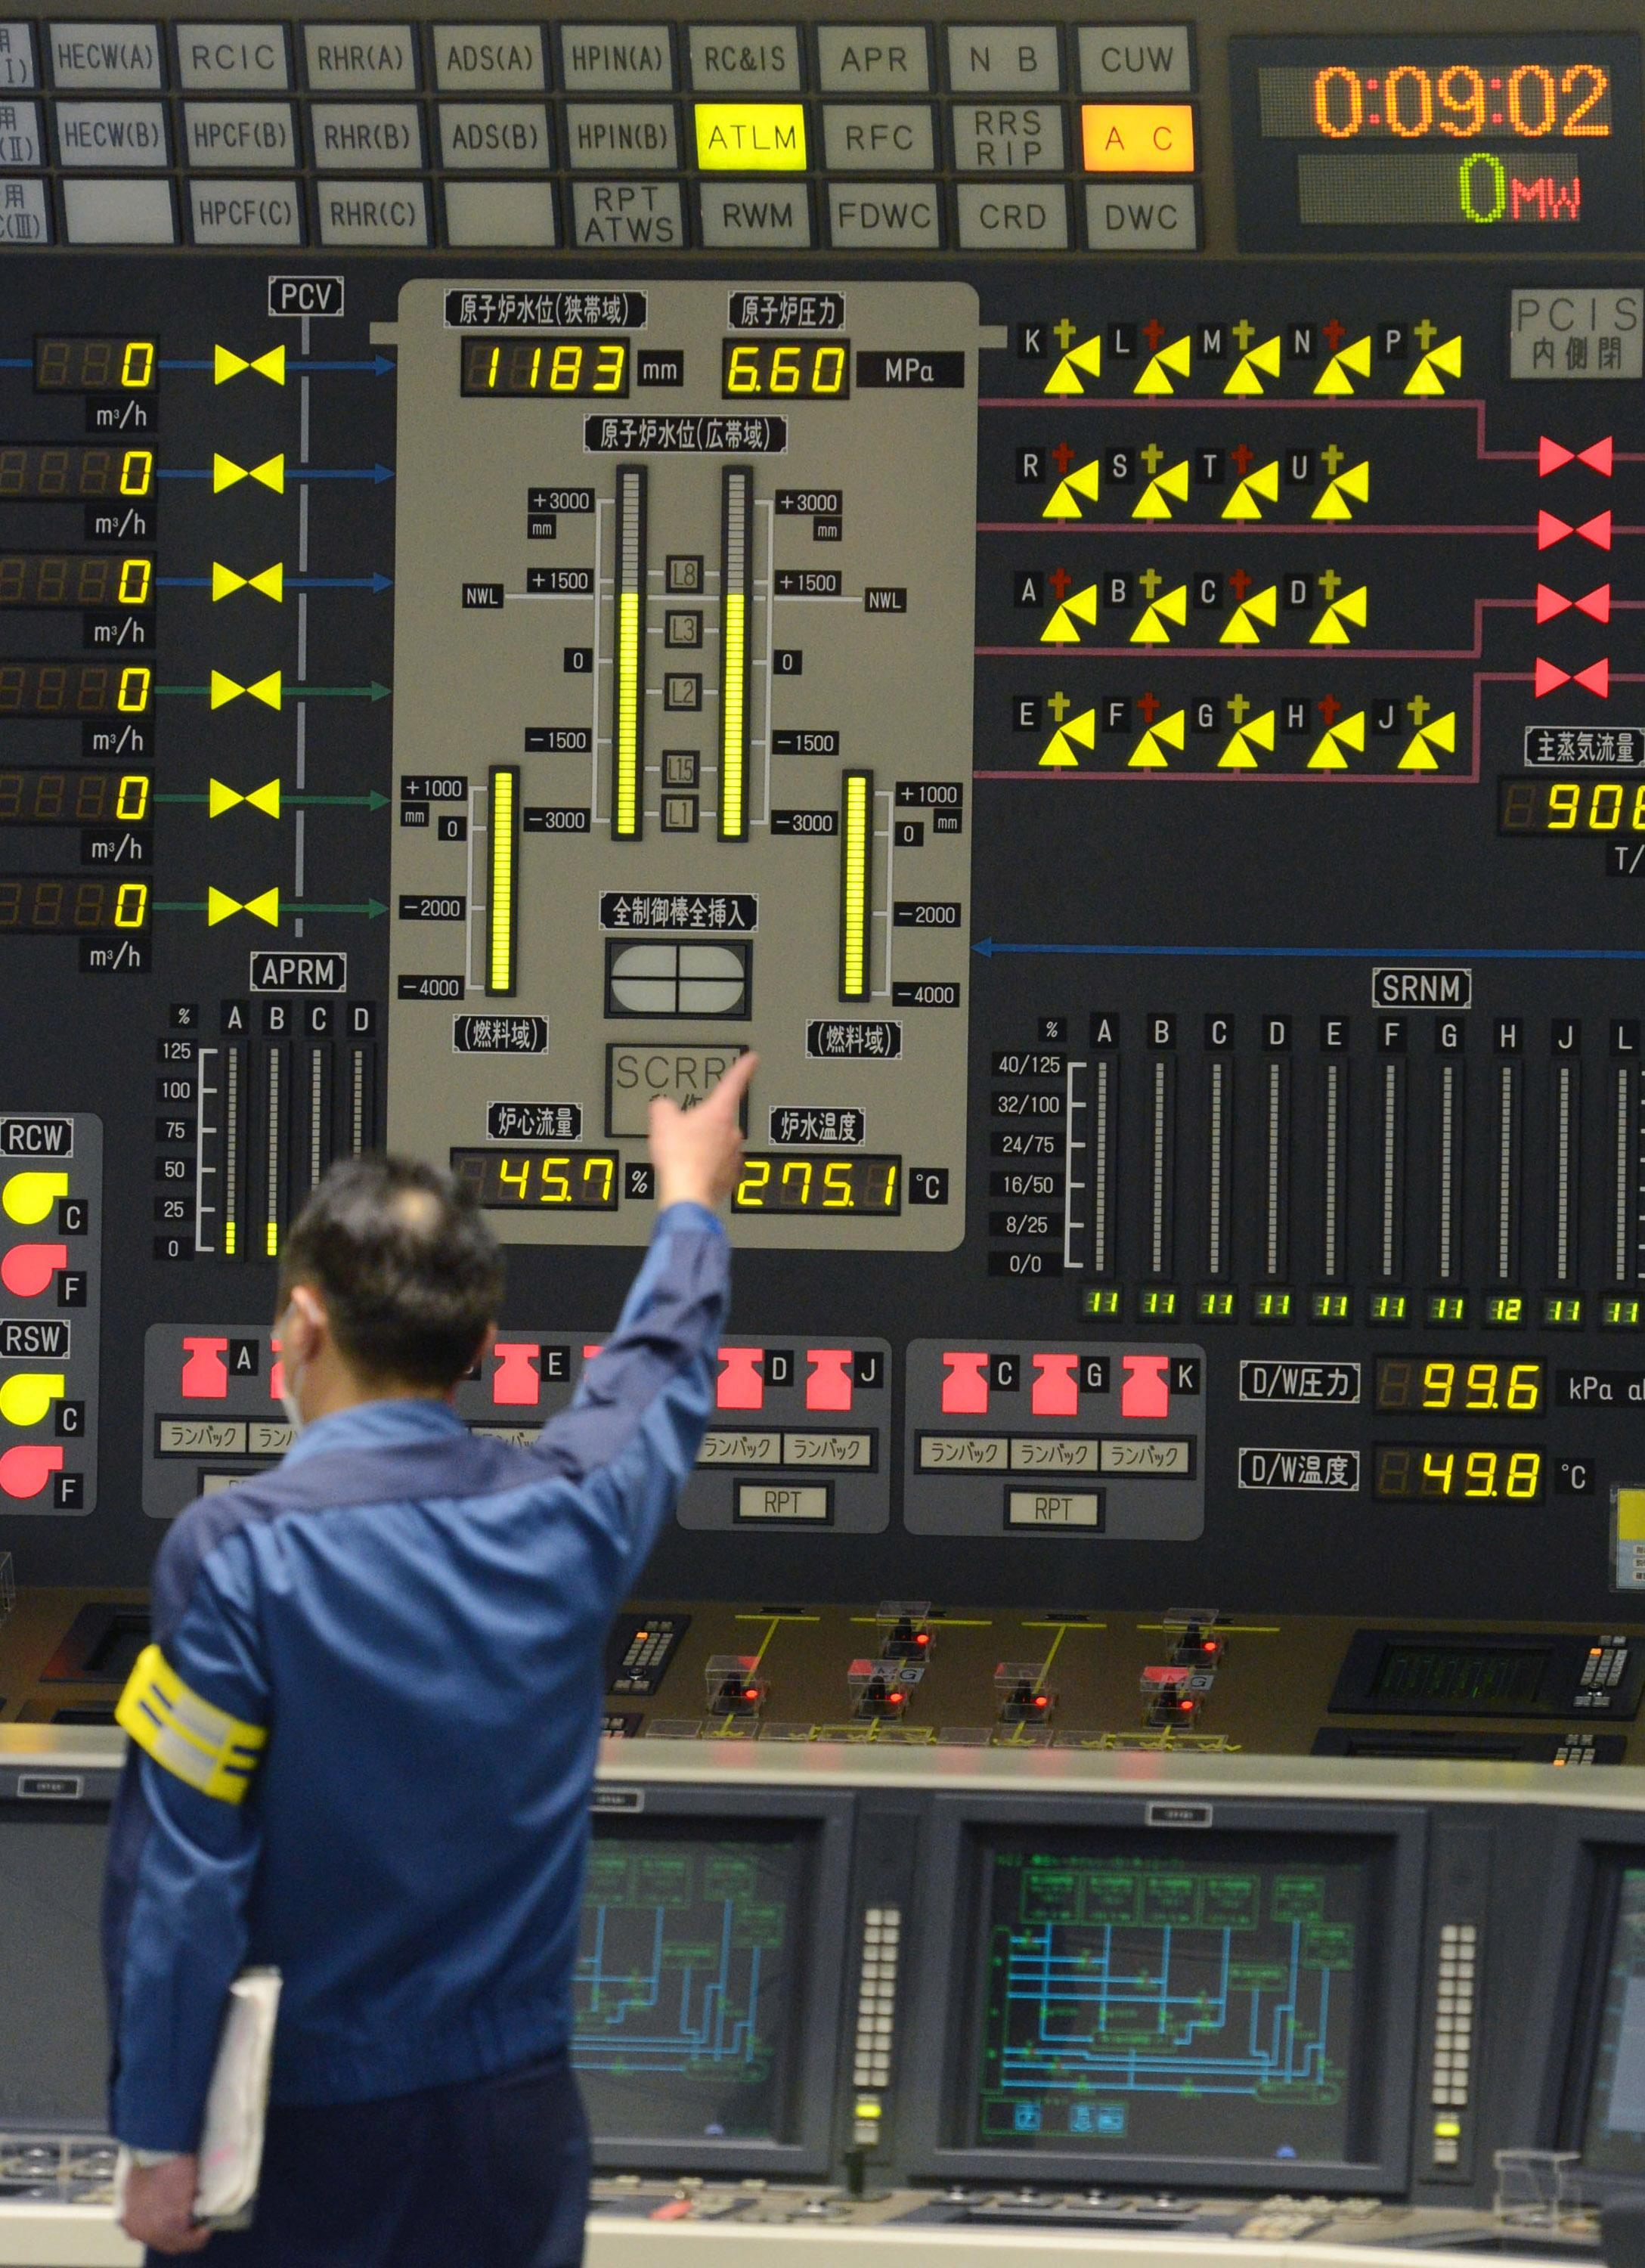 A worker gestures inside the central control room of the No. 6 reactor at the Tokyo Electric Power Company's nuclear power plant in Kariwa village in Kashiwazaki City, northwest of Tokyo early Monday, March 26, 2012, after it was taken off line. The nuclear reactor was taken off line for maintenance on Monday, leaving the country with only one of its 54 reactors operational following last year's devastating earthquake and tsunami. (AP Photo/Kyodo News) JAPAN OUT, MANDATORY CREDIT, NO LICENSING IN CHINA, HONG KONG, JAPAN, SOUTH KOREA AND FRANCE